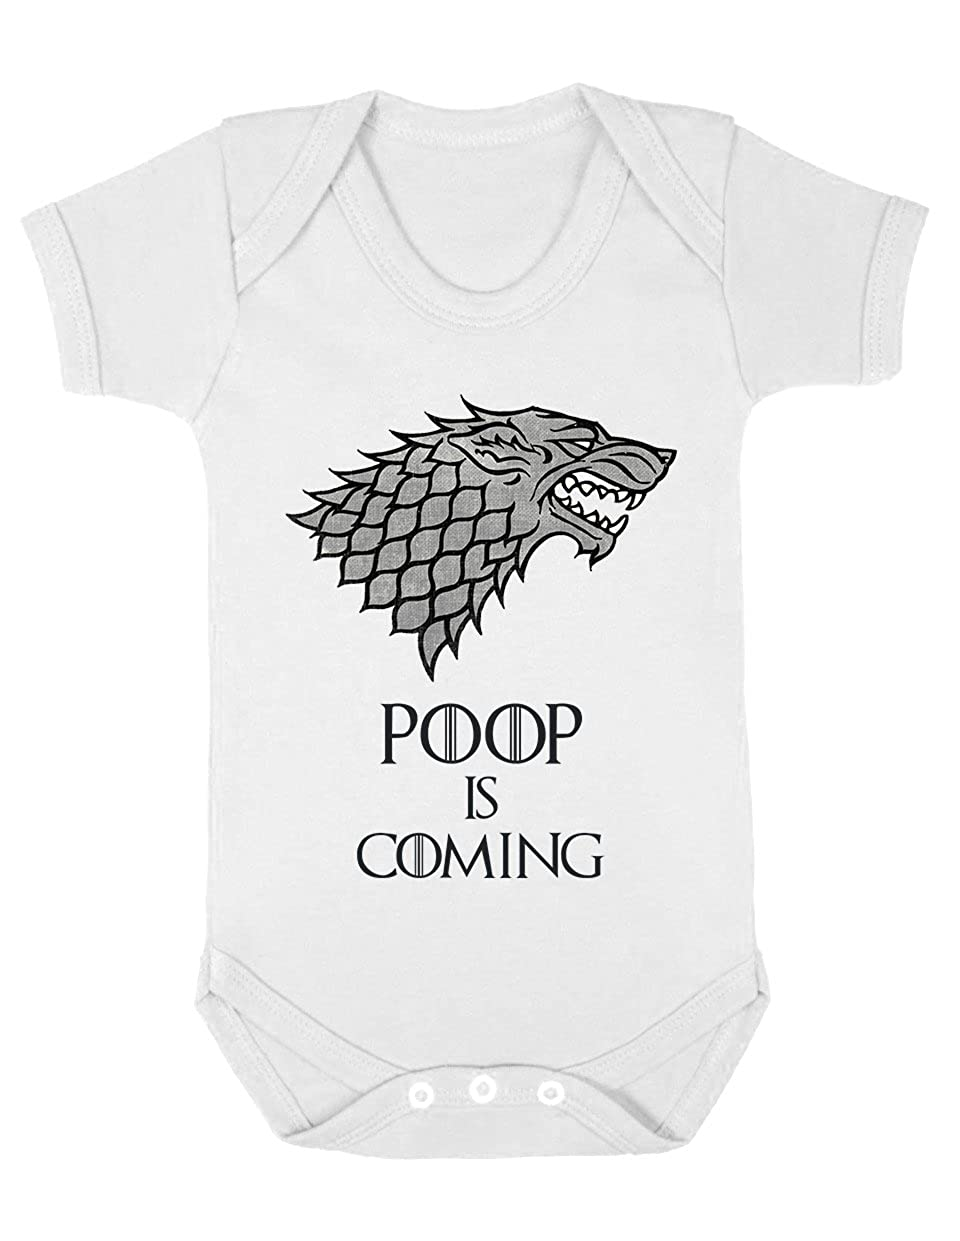 Poop is Coming Funny Game of Thrones Inspired Slogan White Baby Grow